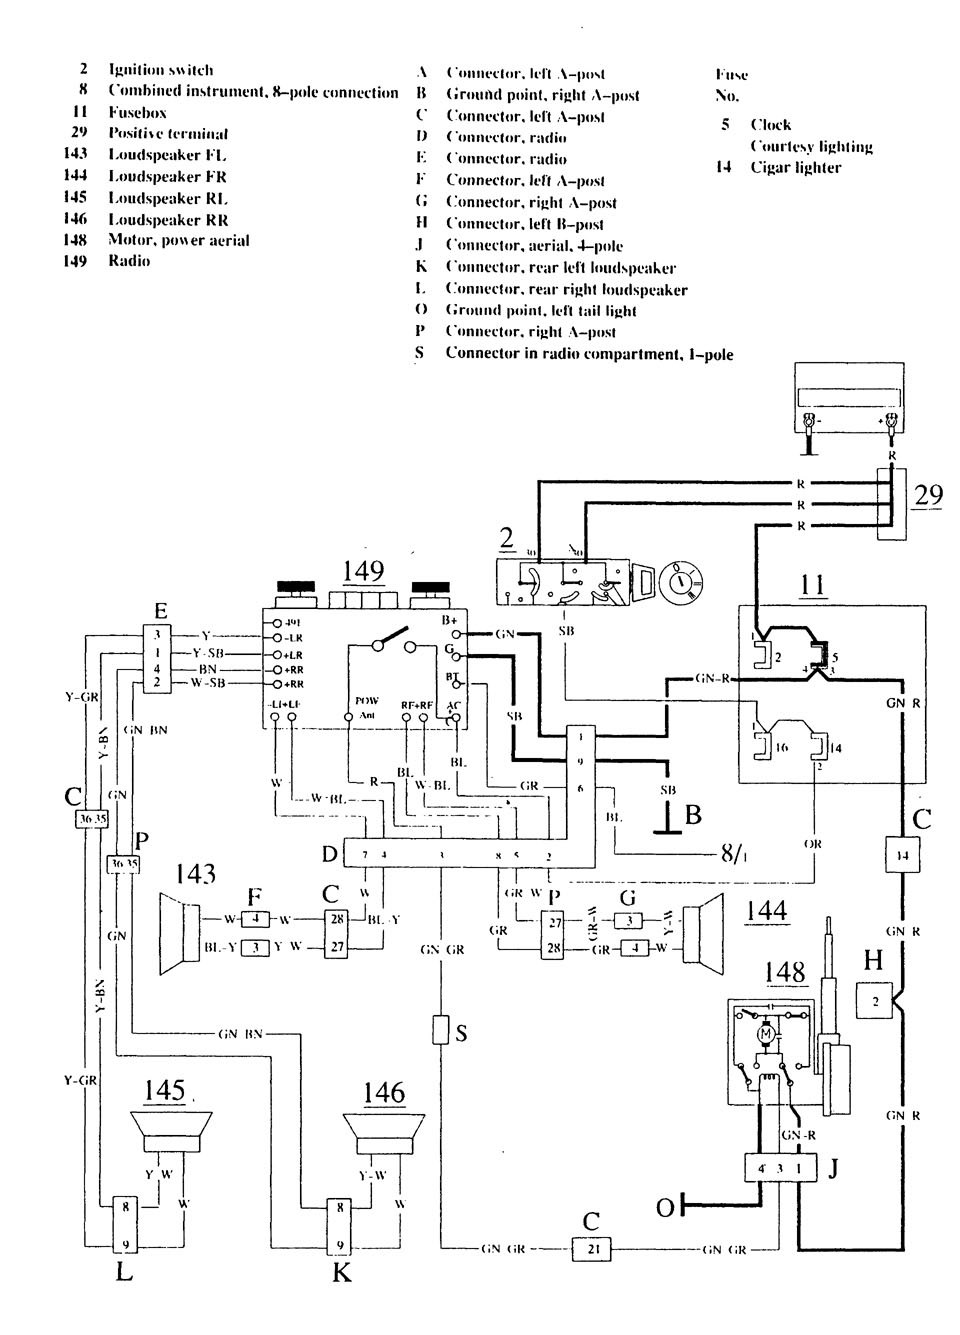 Wiring Diagram Volvo 740 Stereo Diagrams D13 Engine Lh 22 To Ezk117 My L98 Corvette Lightning V70 Electrical Truck